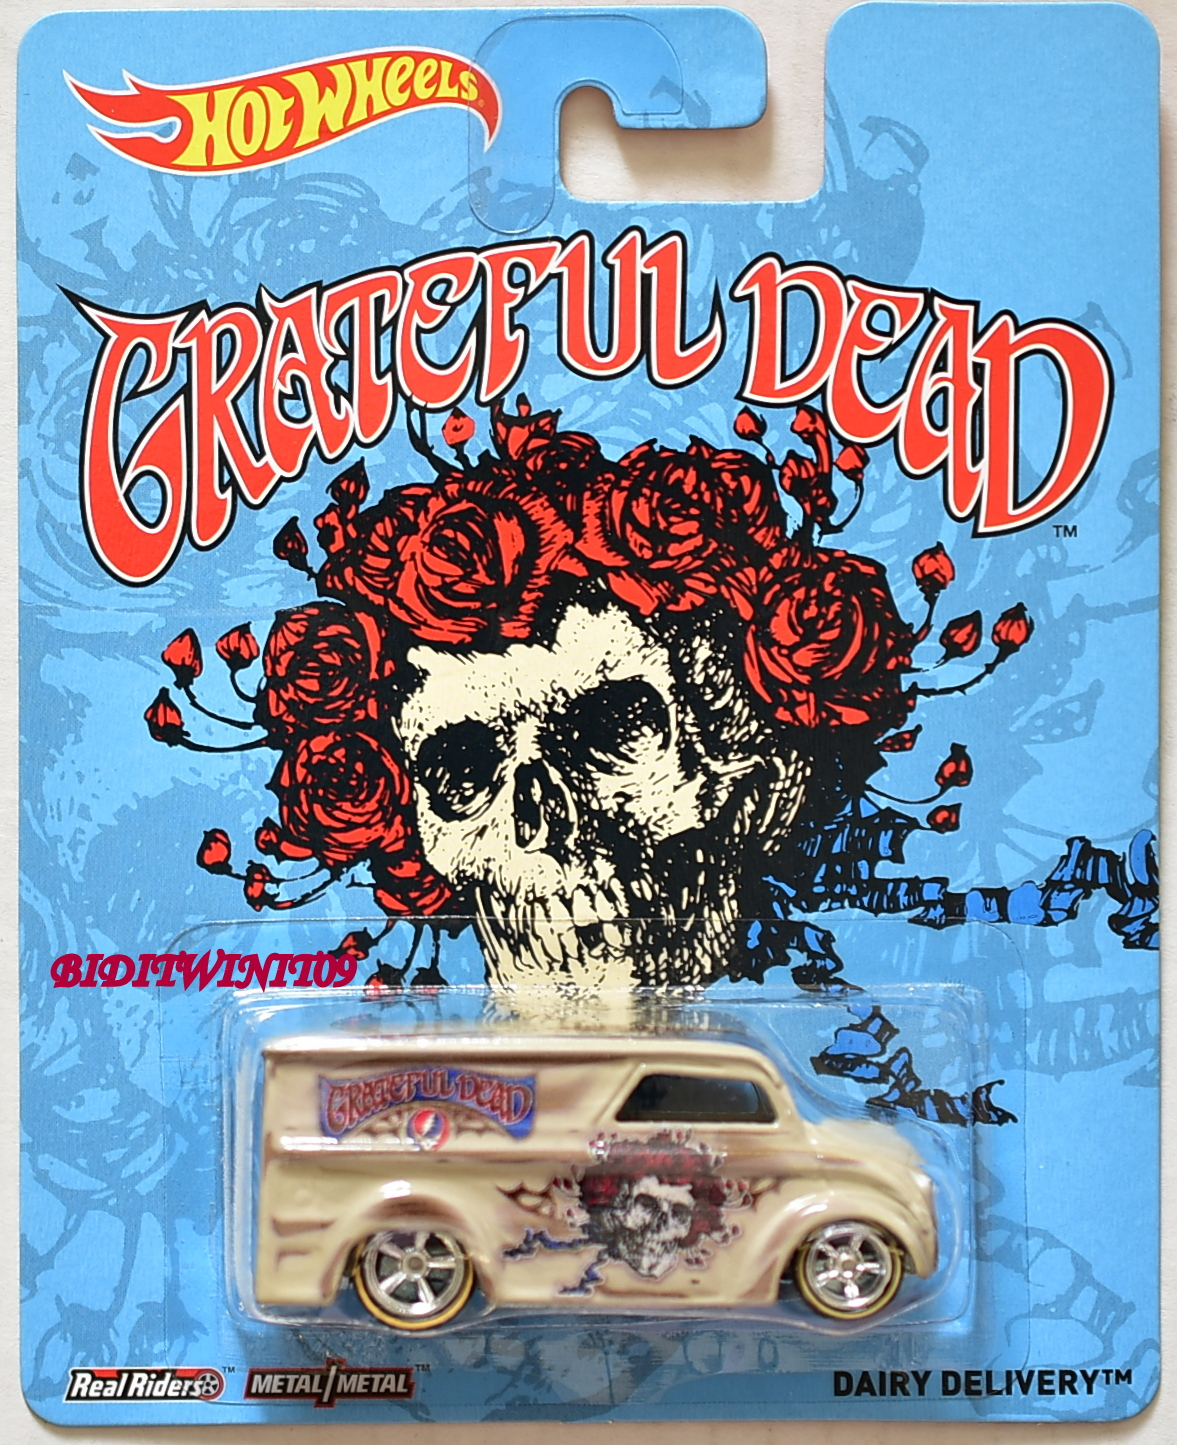 HOT WHEELS POP CULTURE 2014 GRATEFUL DEAD DAIRY DELIVERY